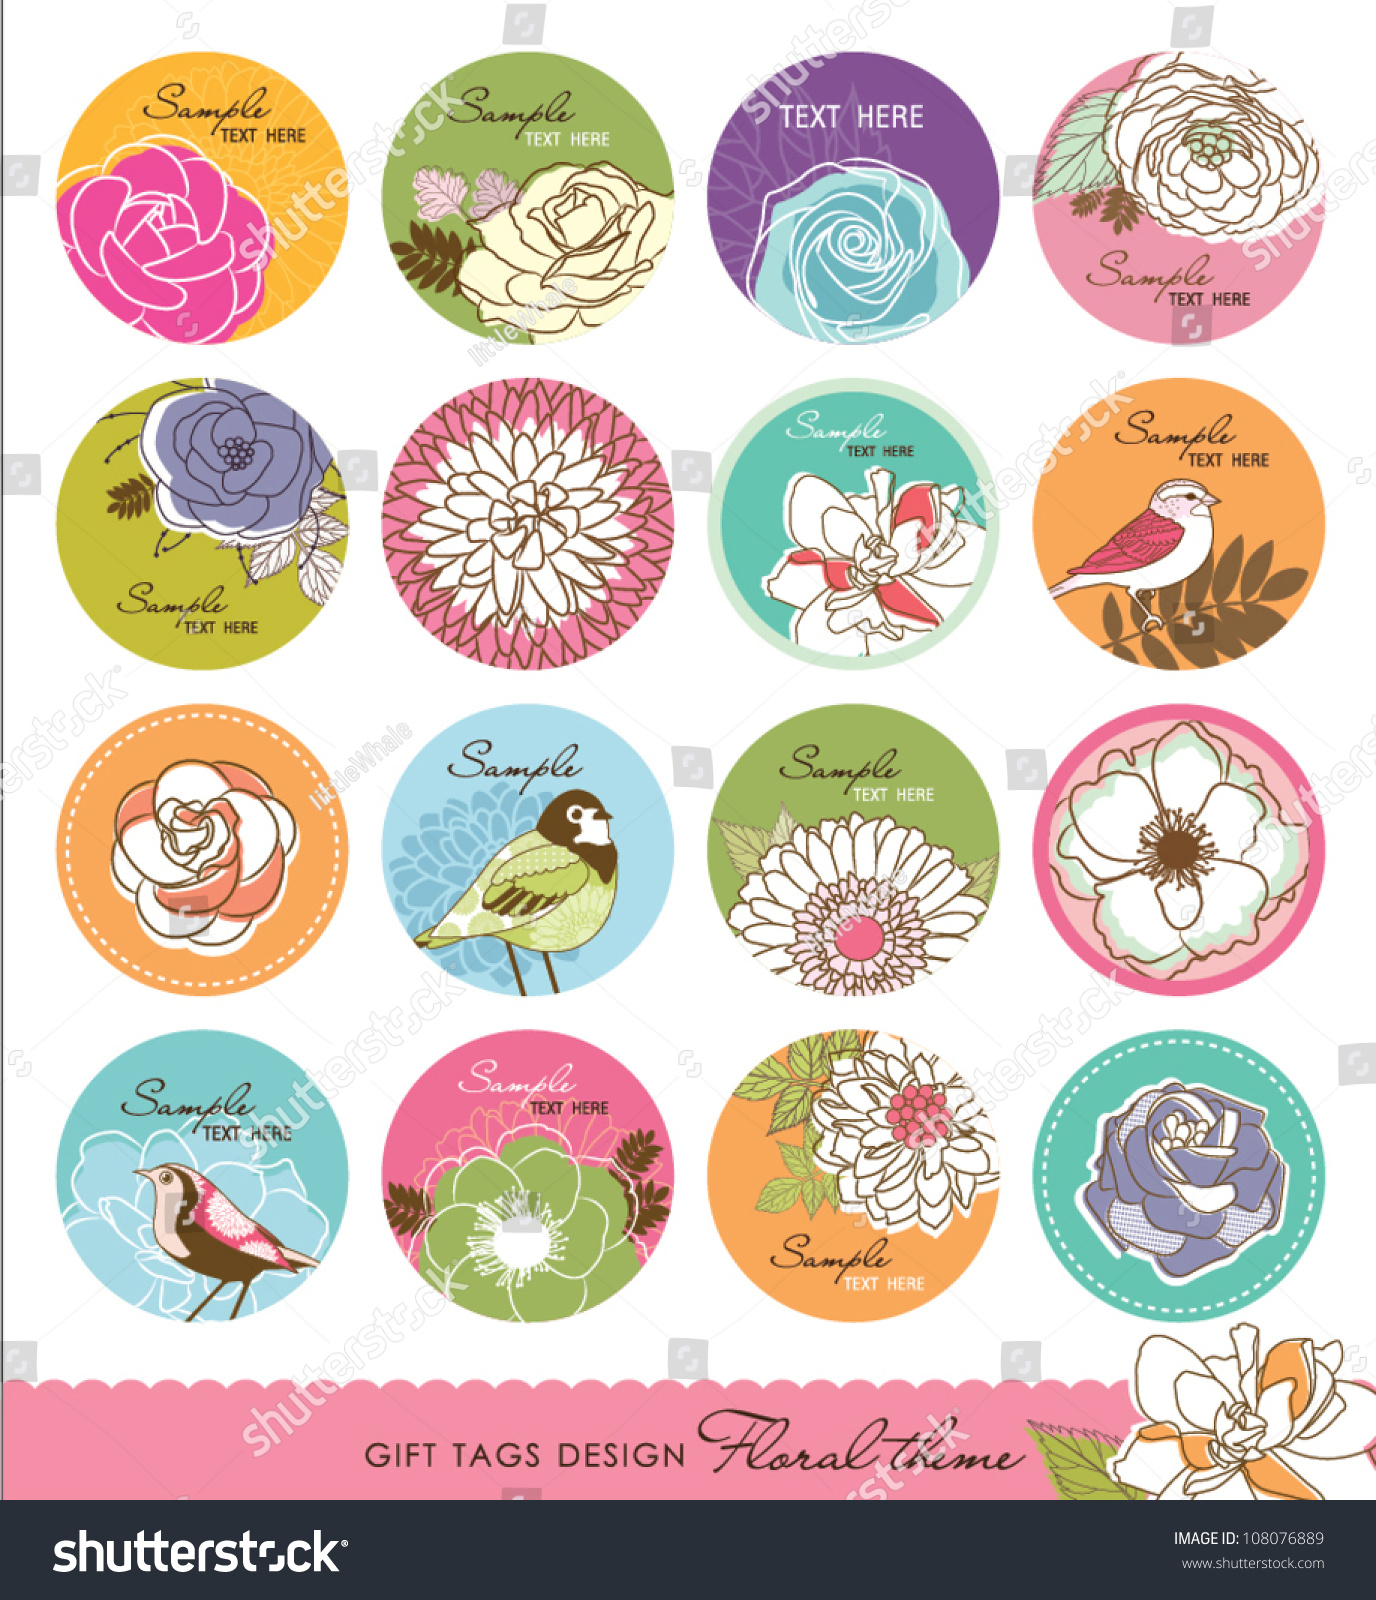 Set Gift Tag Design Floral Theme Stock Vector 108076889 - Shutterstock